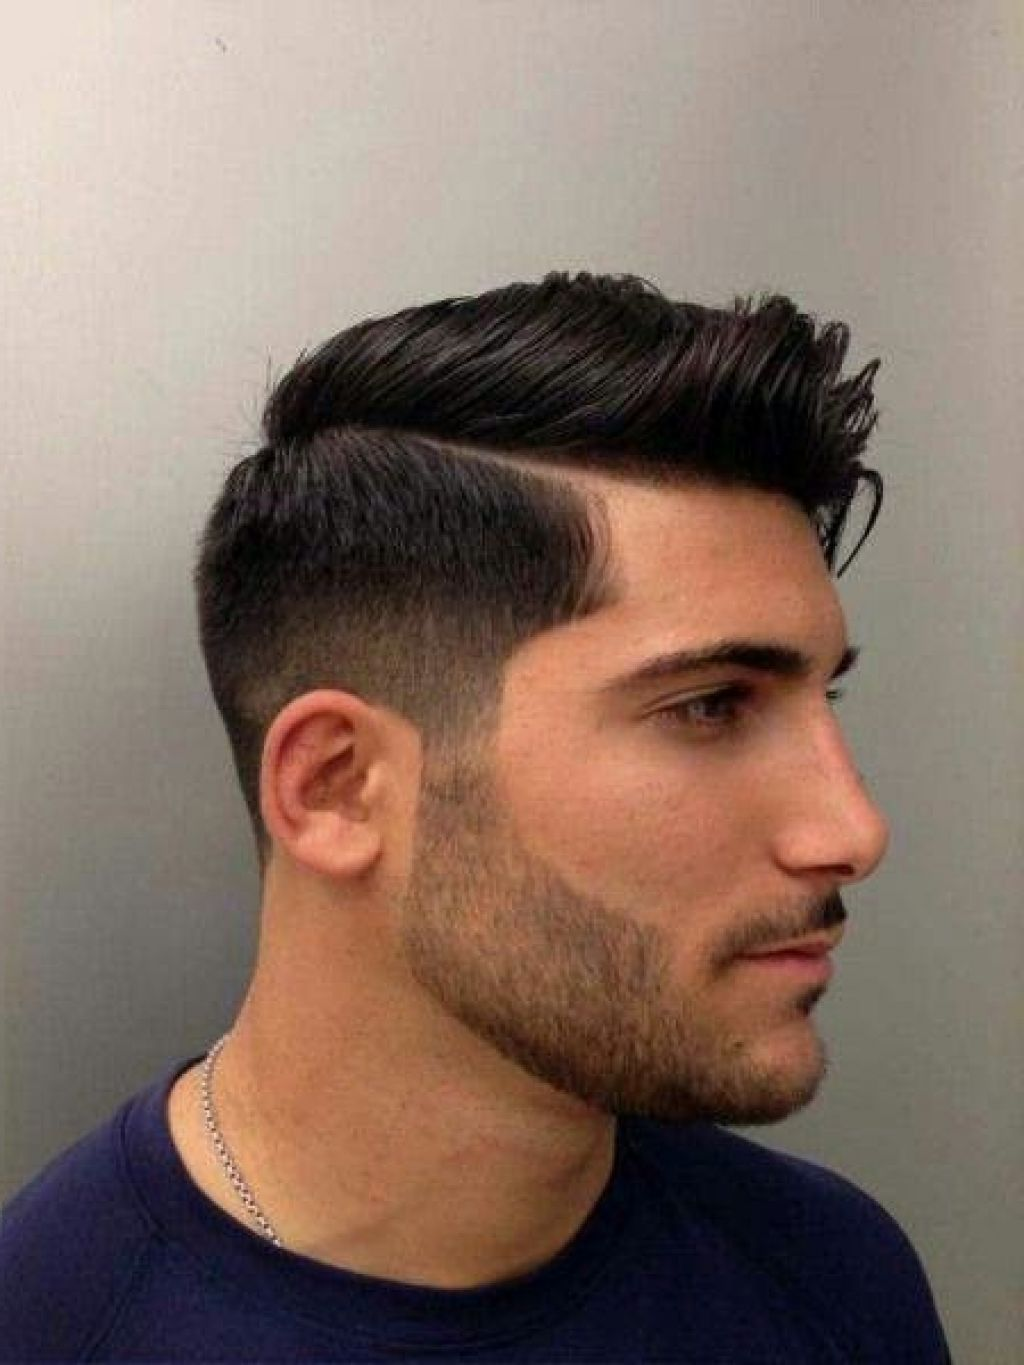 Faded Straight Haircuts For Men Latest Hairstyles For Medium Hair - Straight hair styles for men